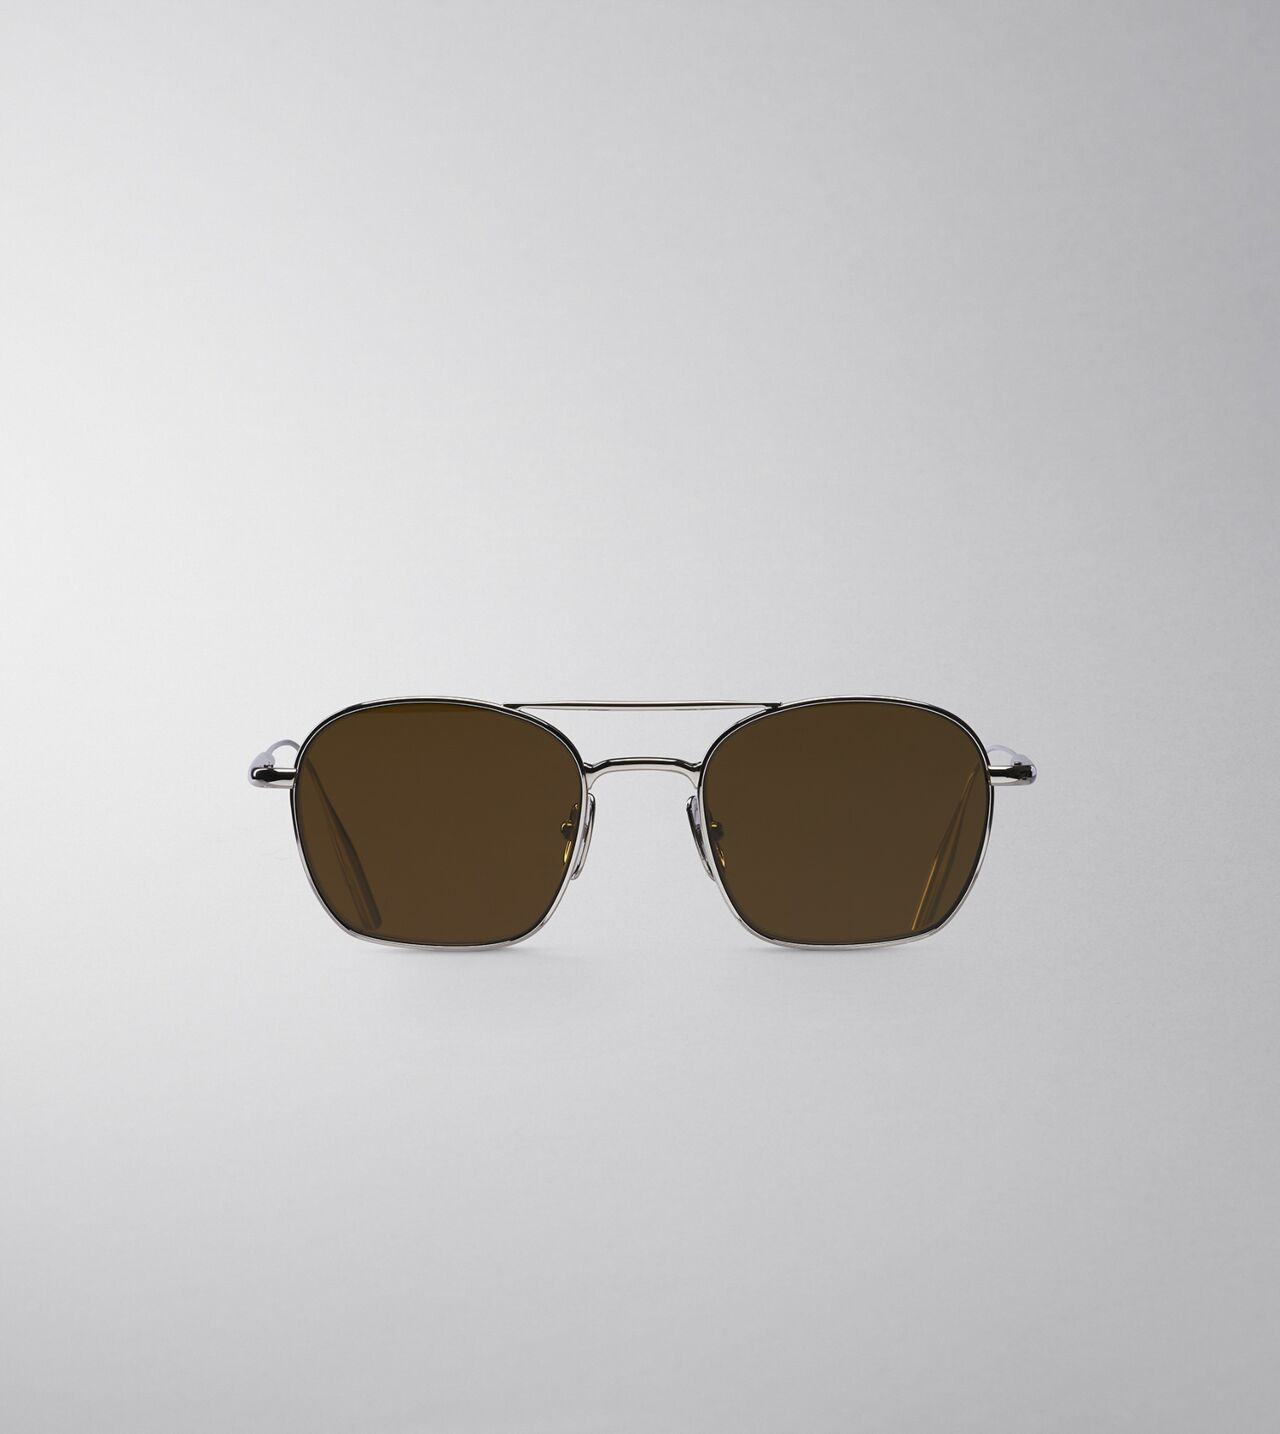 Picture of Byredo The Engineer in Palladium brown